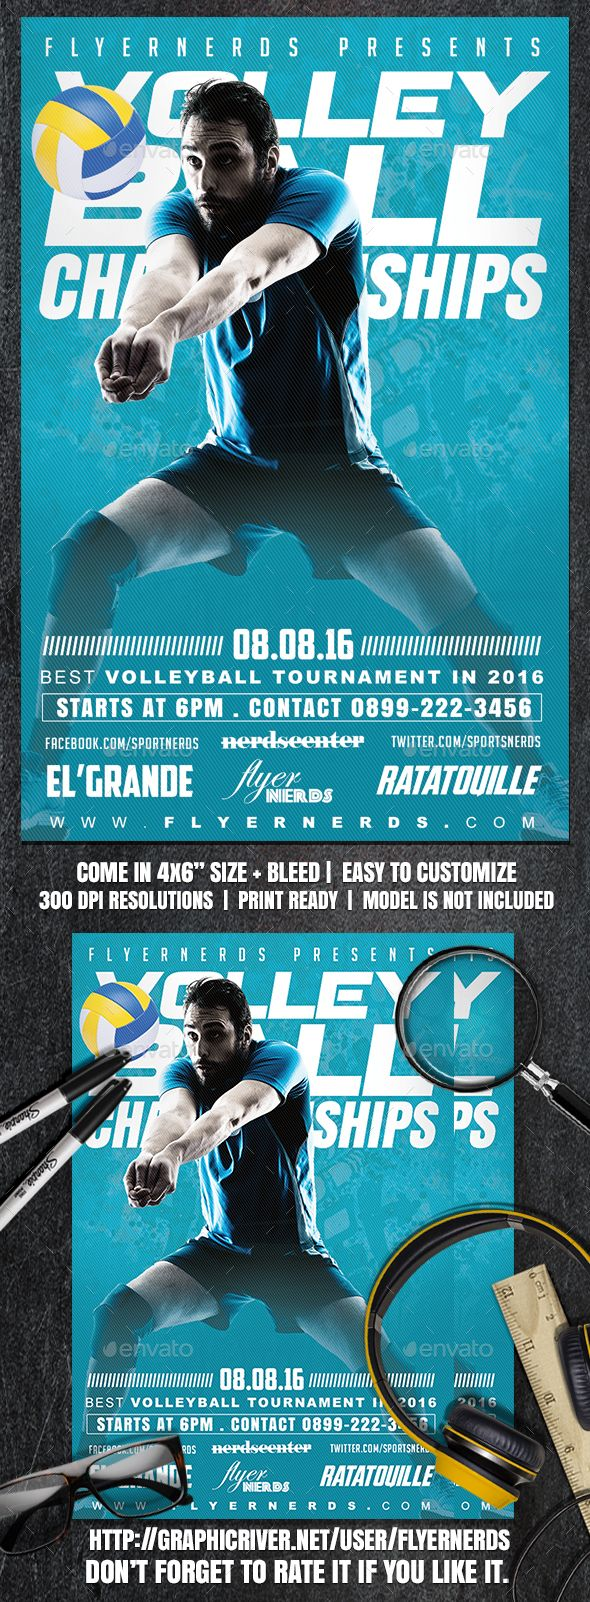 Volleyball Championships Sports Flyer Professional Sports Flyer Template Flyer Design Printdesign Sport Print Exercise Sports Flyer Volleyball Sports